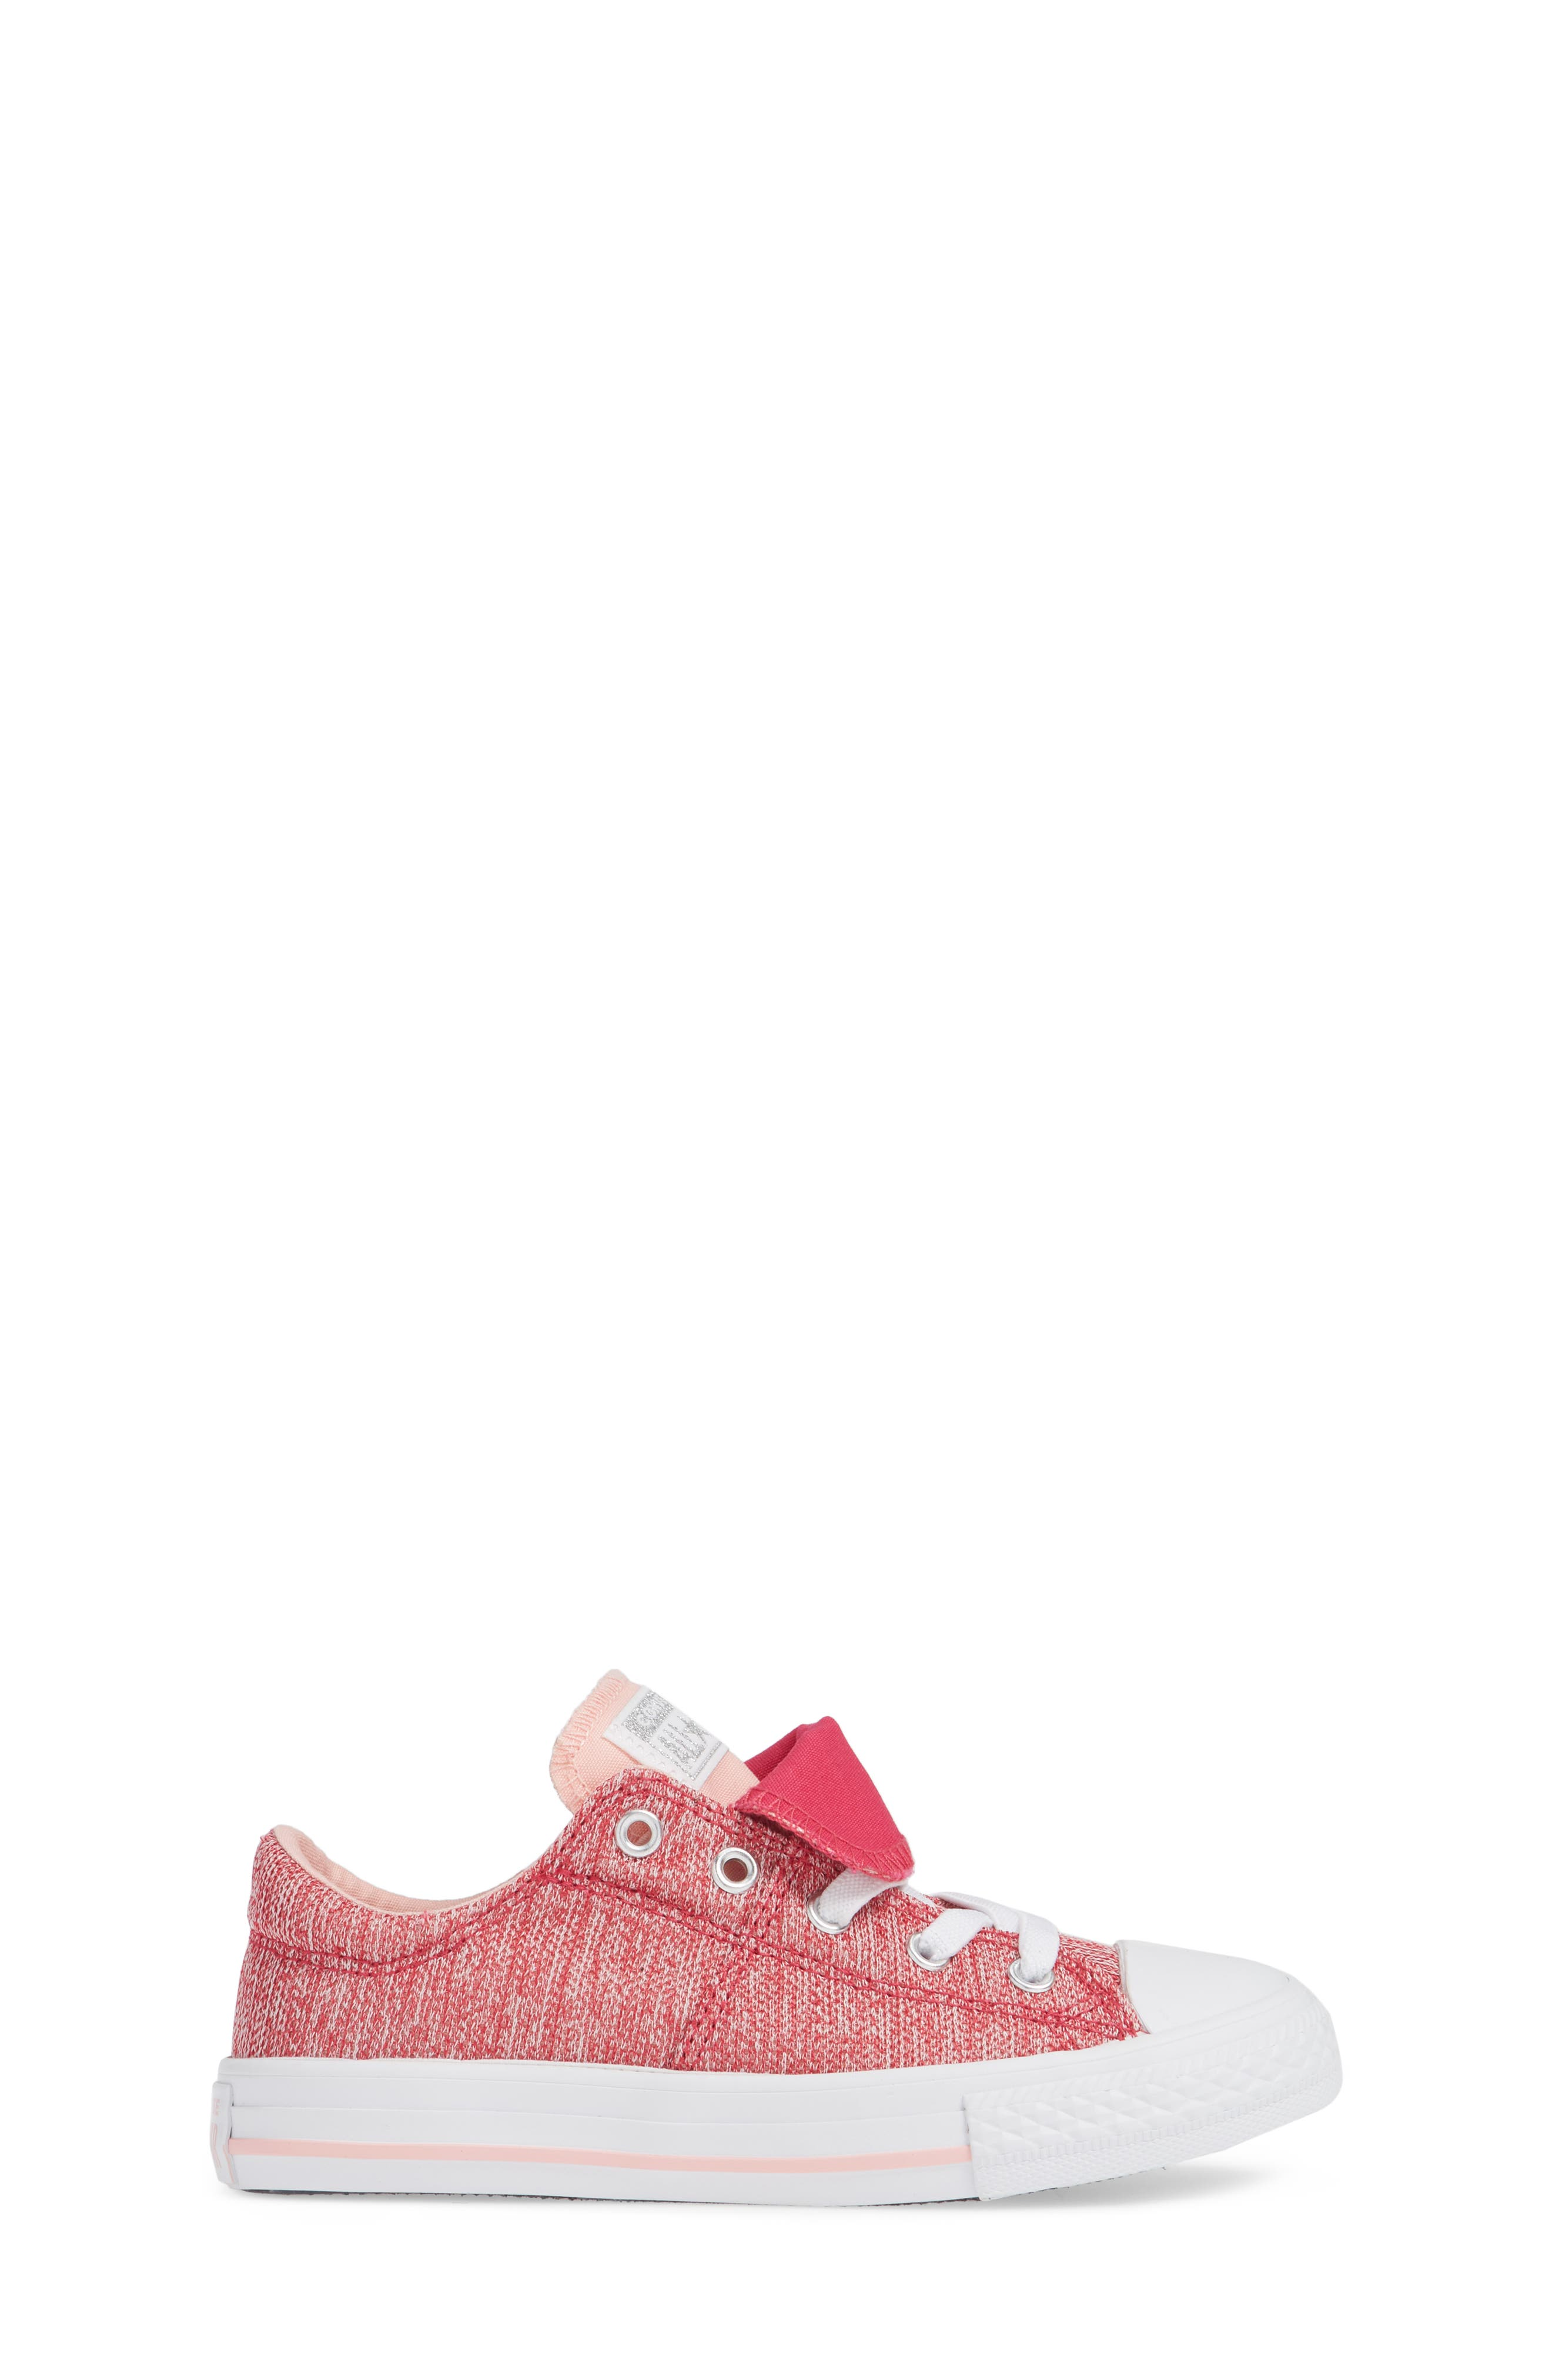 ,                             Chuck Taylor<sup>®</sup> All Star<sup>®</sup> Maddie Double Tongue Sneaker,                             Alternate thumbnail 63, color,                             673